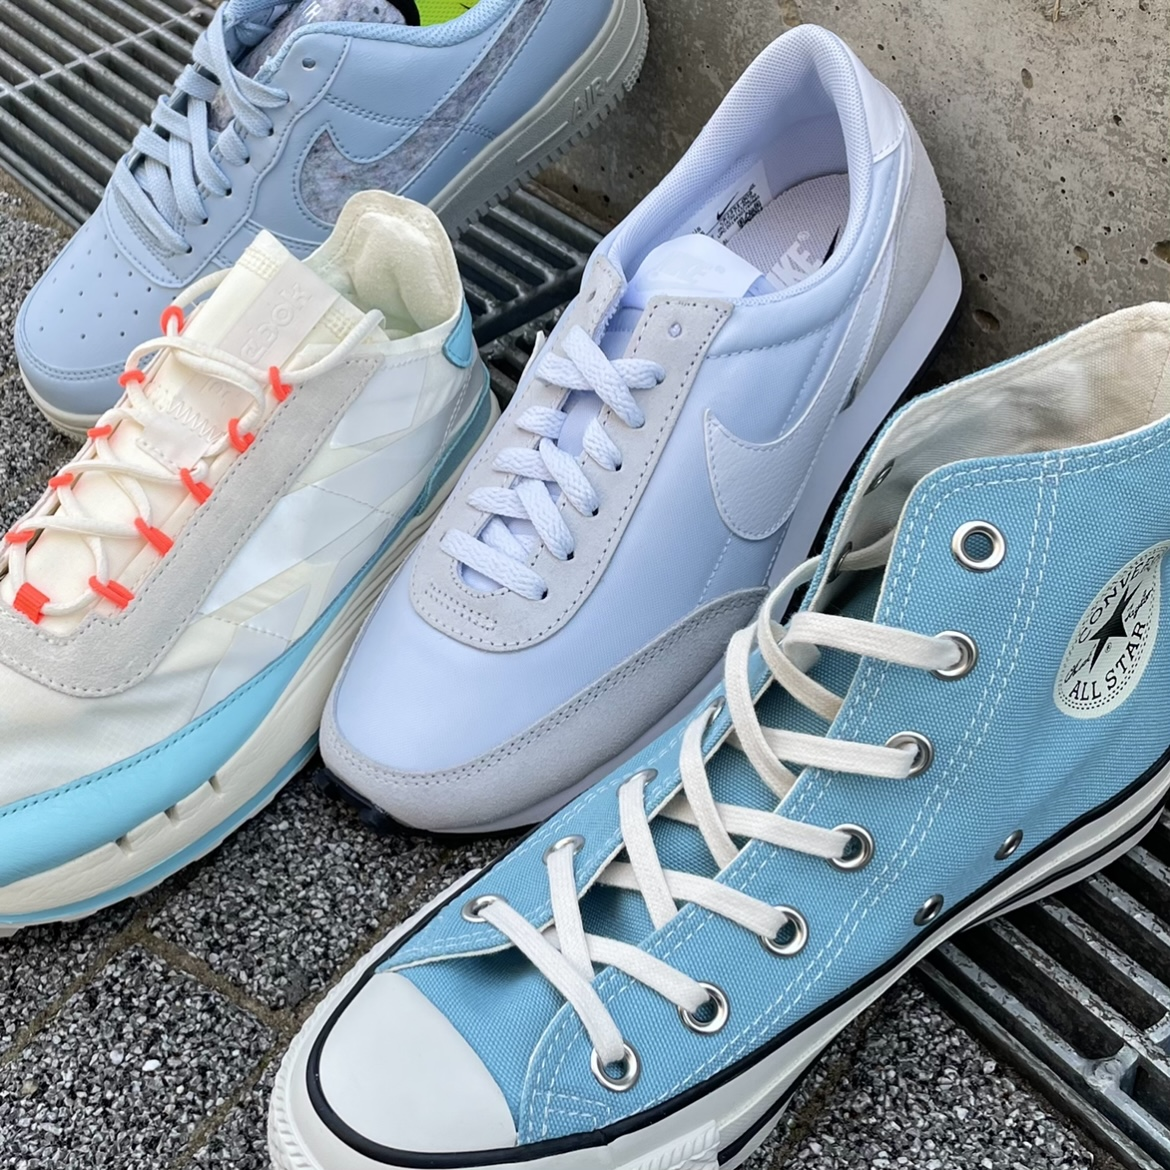 ❮ACE Shoes Spring Collection❯